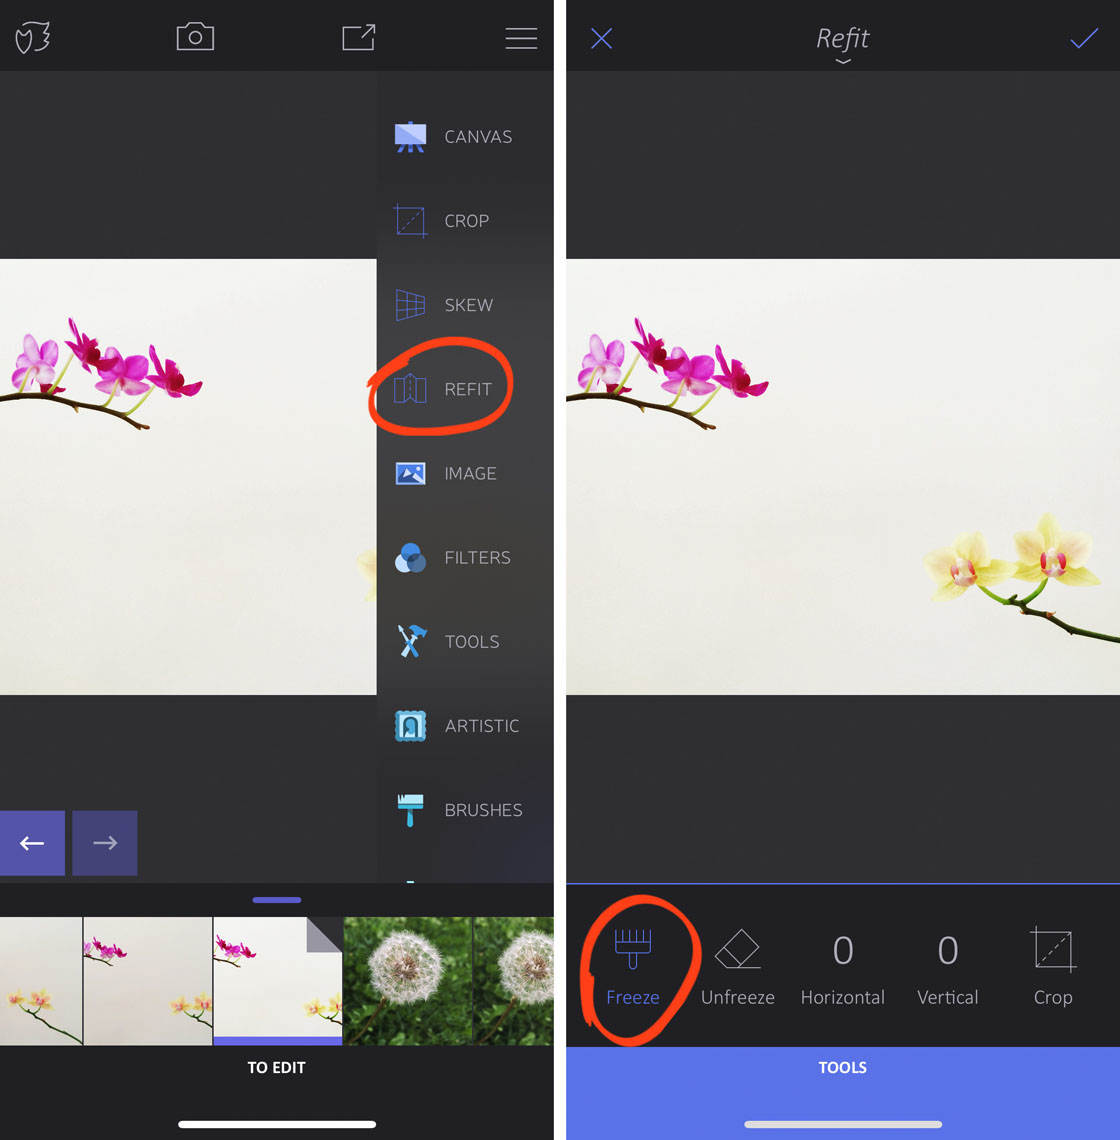 Enlight App Tutorial: Complete Guide To Editing iPhone